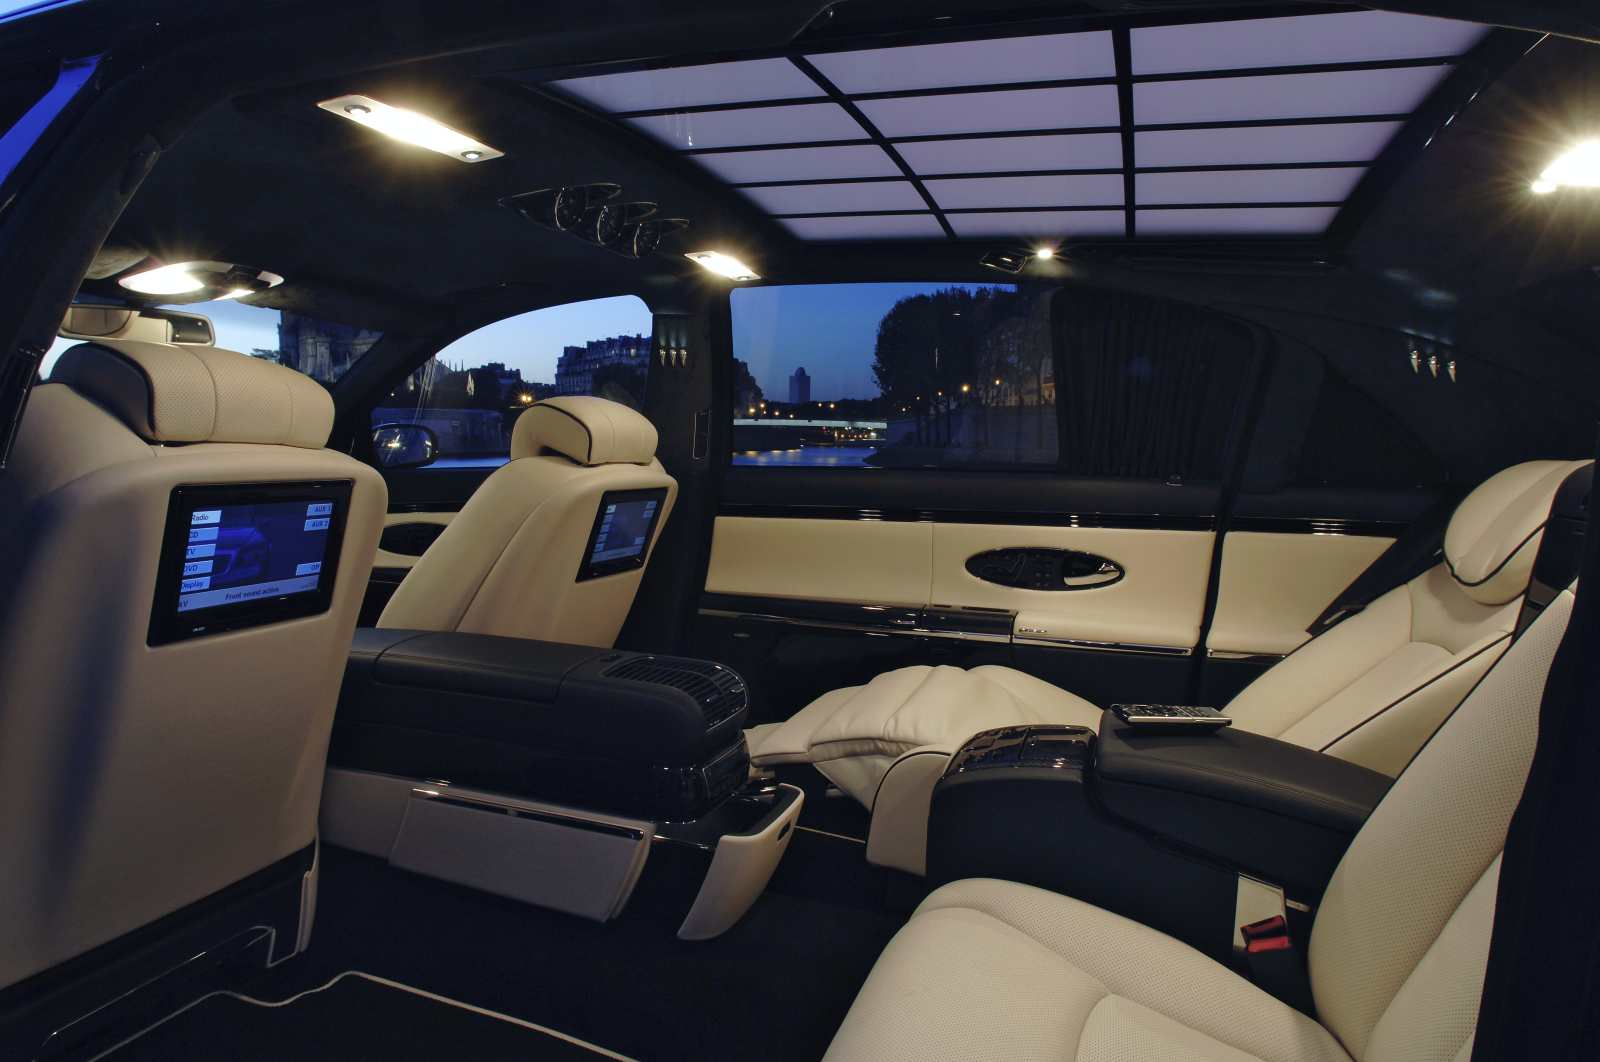 stylish car and interior maybach 62s for luxury car luxury interior. Black Bedroom Furniture Sets. Home Design Ideas